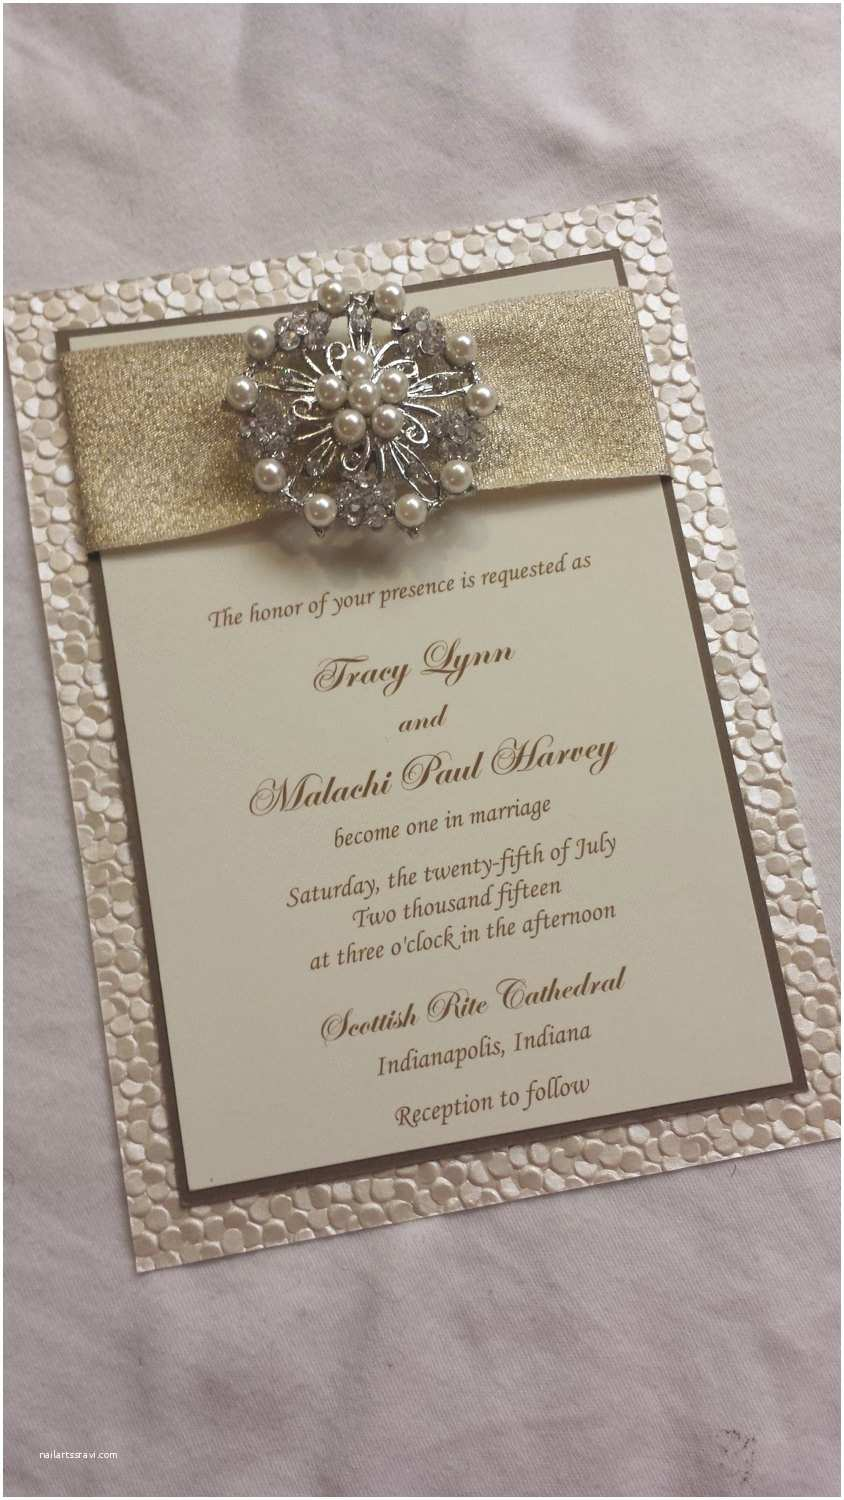 Ribbon Brooch Wedding Invitation Embossed Wedding Invitation Pebble Paper Wedding Invitation Sample with Ribbon Pearl Brooch